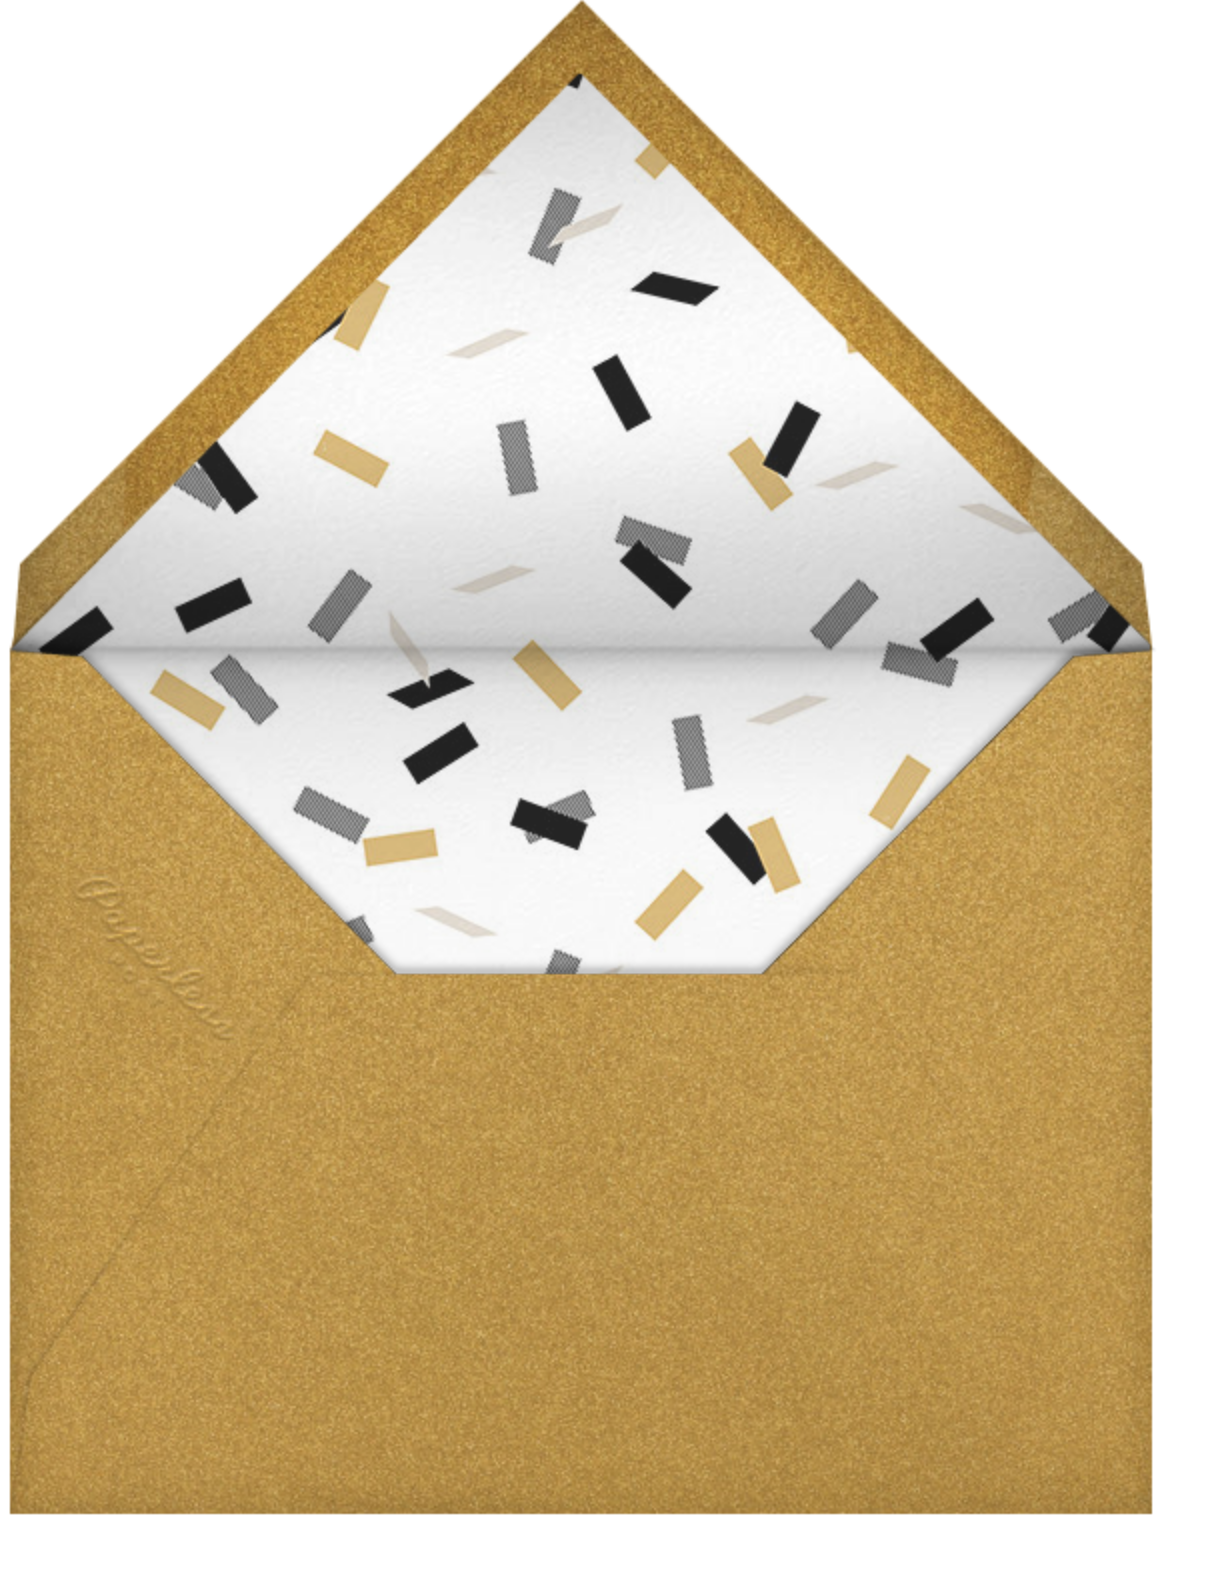 Fort Knox (Tall) - Paperless Post - Adult birthday - envelope back